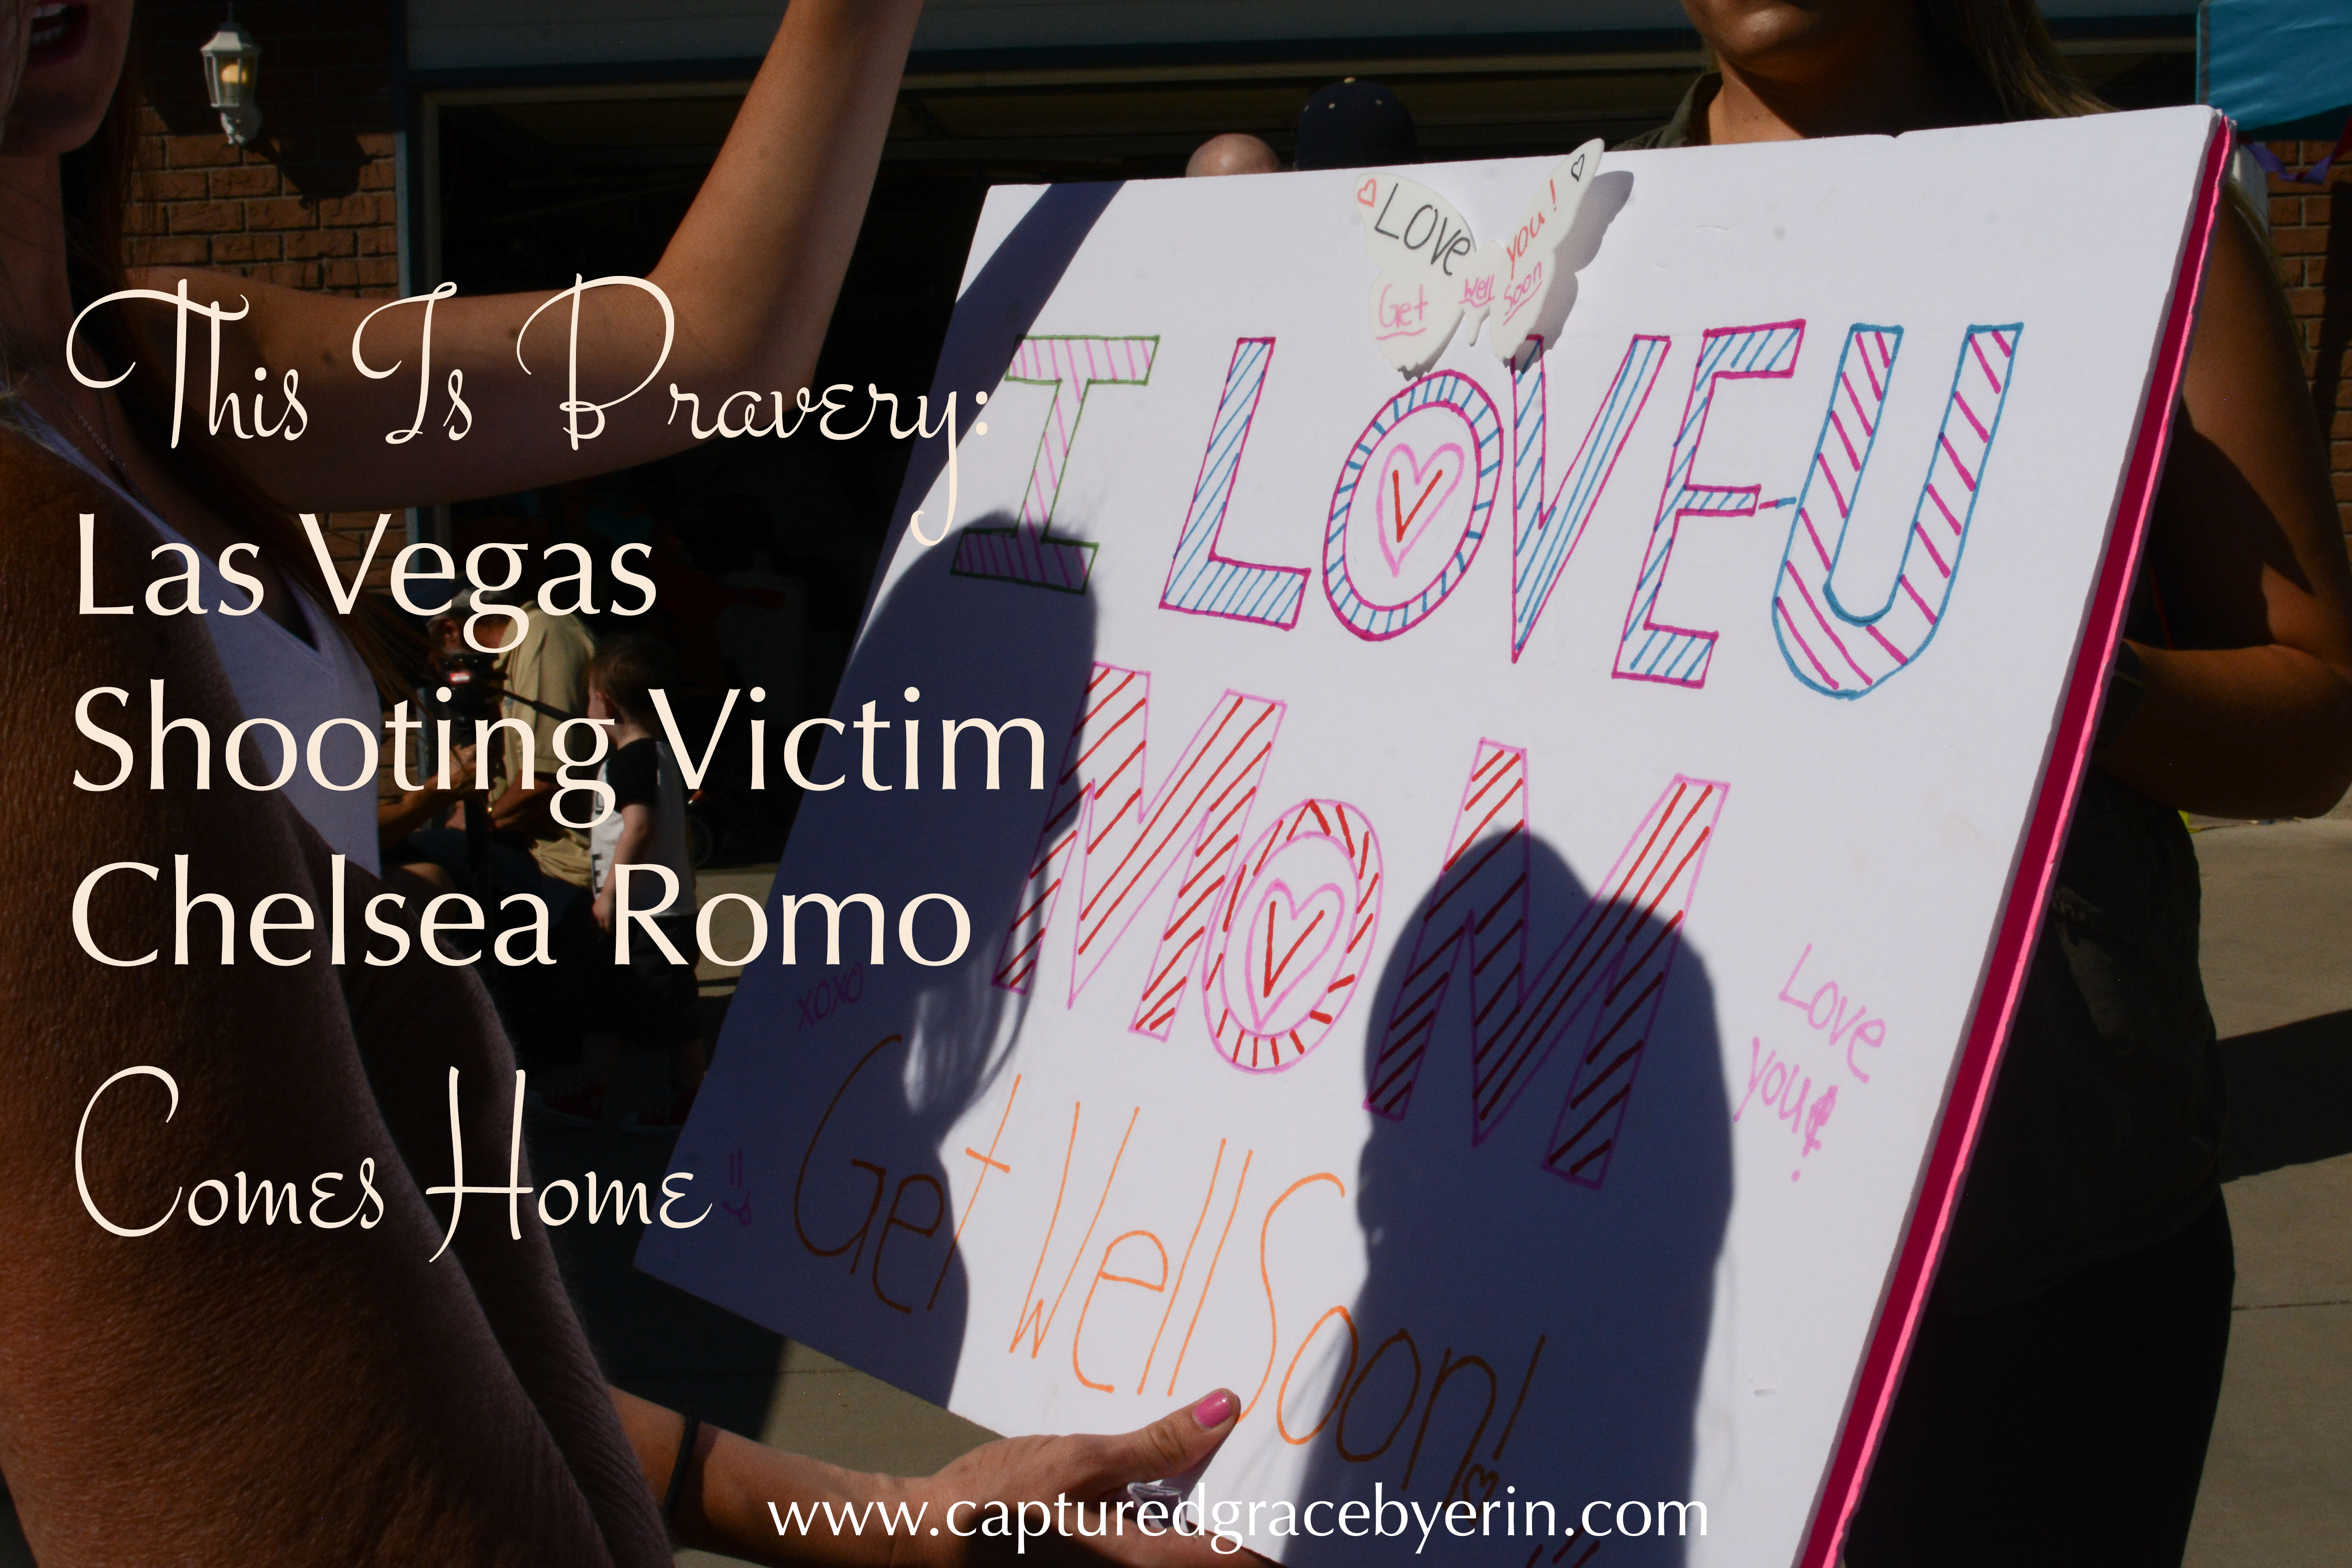 las vegas shooting victim chelsea romo homecoming